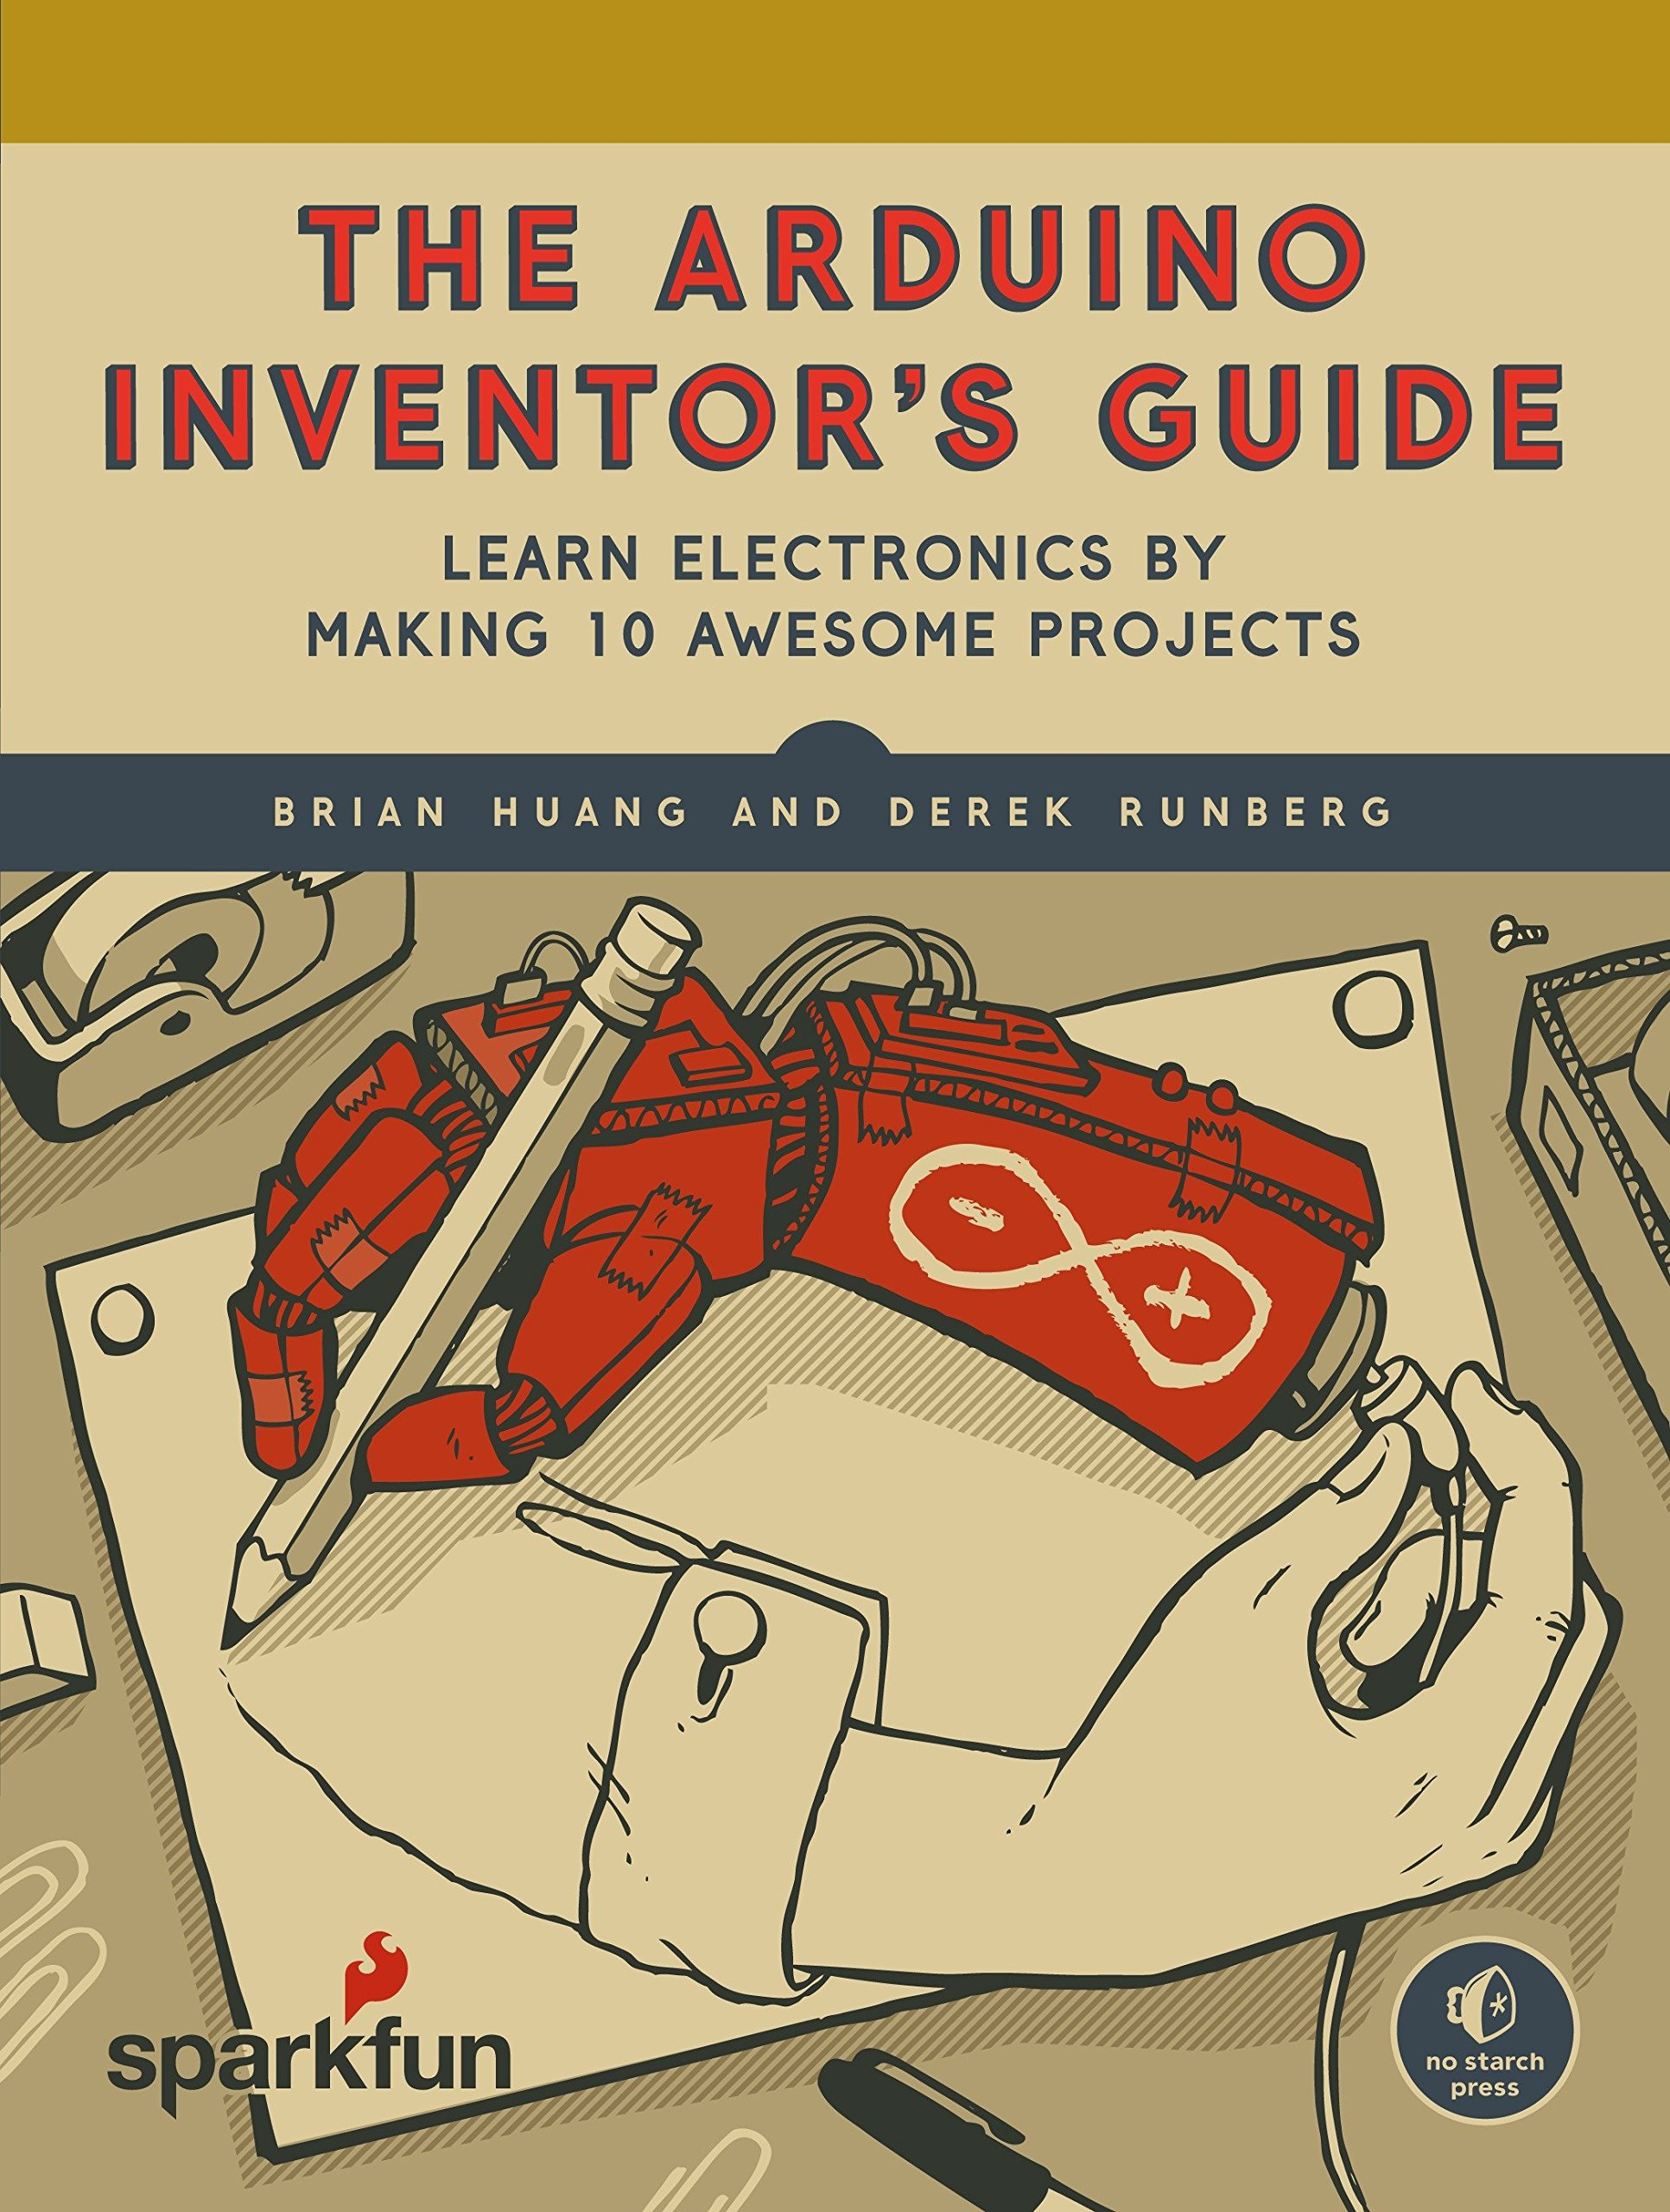 The Arduino Inventors Guide Learn Electronics By Making 10 Awesome Step 3 Building Circuits From Circuit Diagrams Projects Brian Huang Derek Runberg 9781593276522 Books